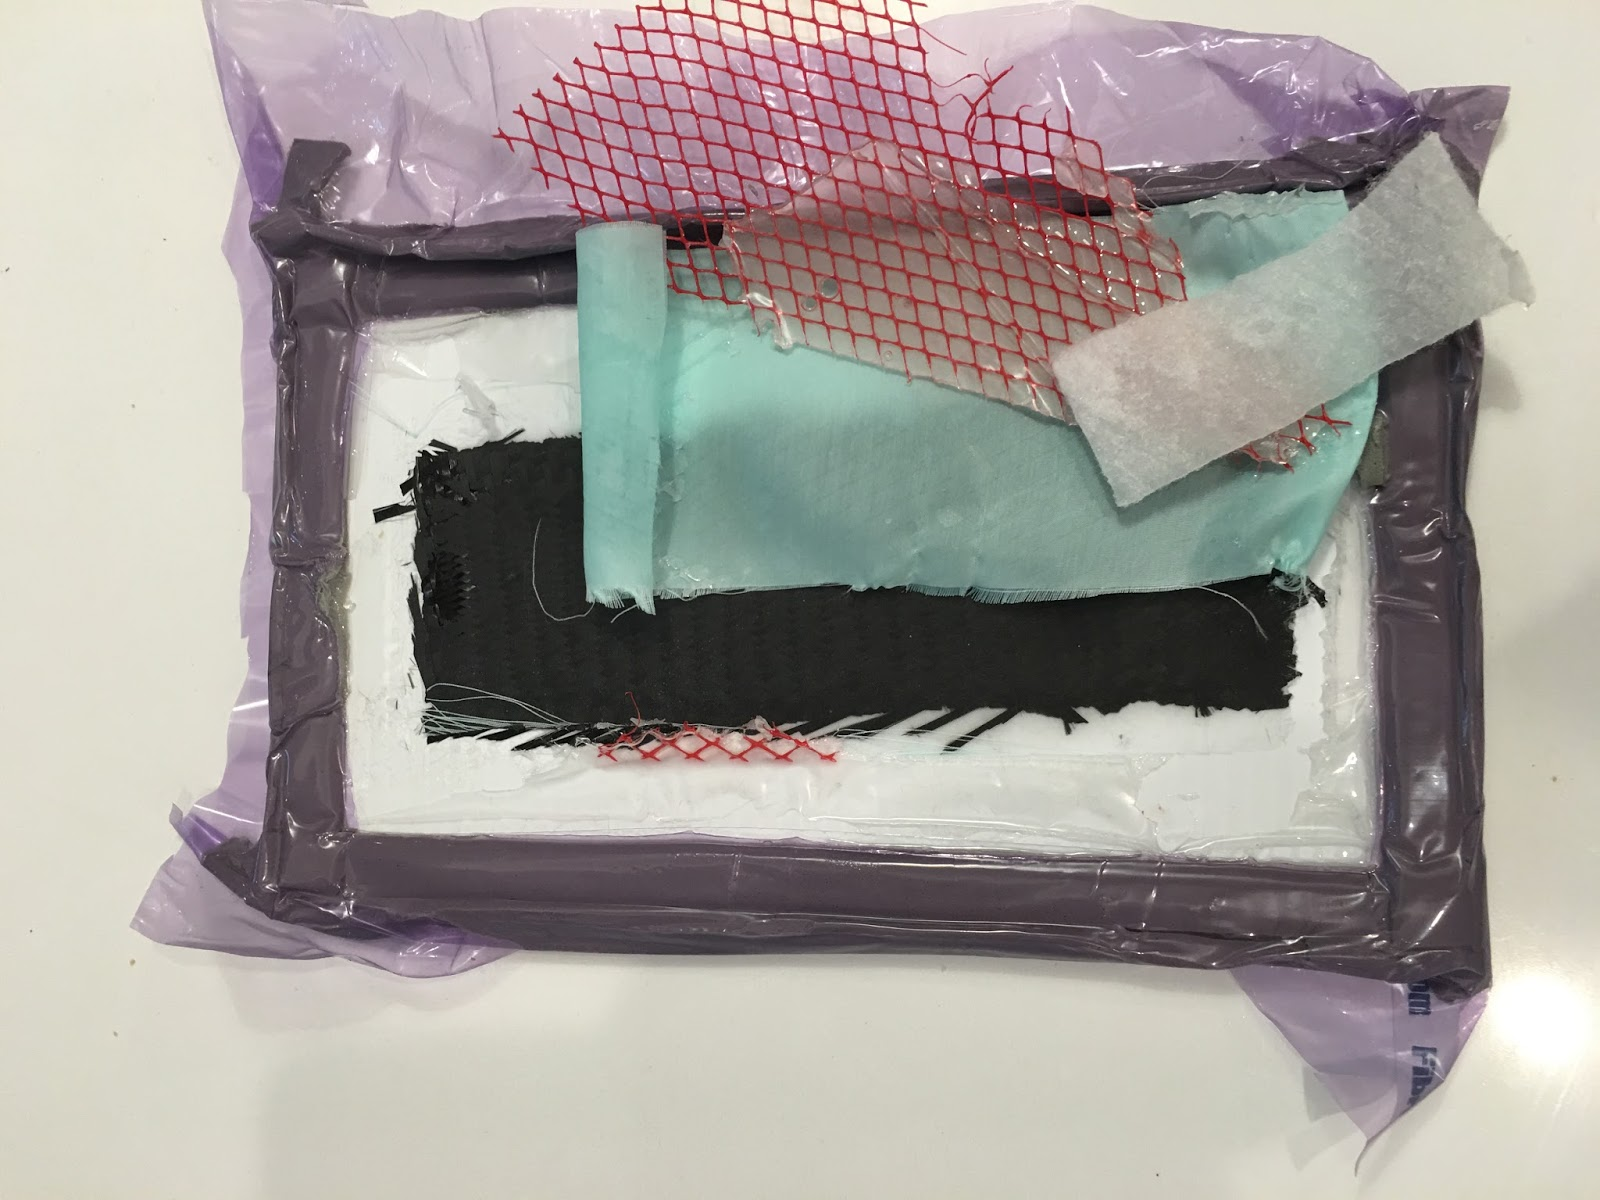 Contents of the vacuum bag: Stiff backing board (white); Carbon fiber (black); Peel ply (green) - removed after infusion; Flow media (red) - removed after; Absorbent batting (white) - removed after; Vacuum bag (purple); Tacky tape (grey) to seal the bag.